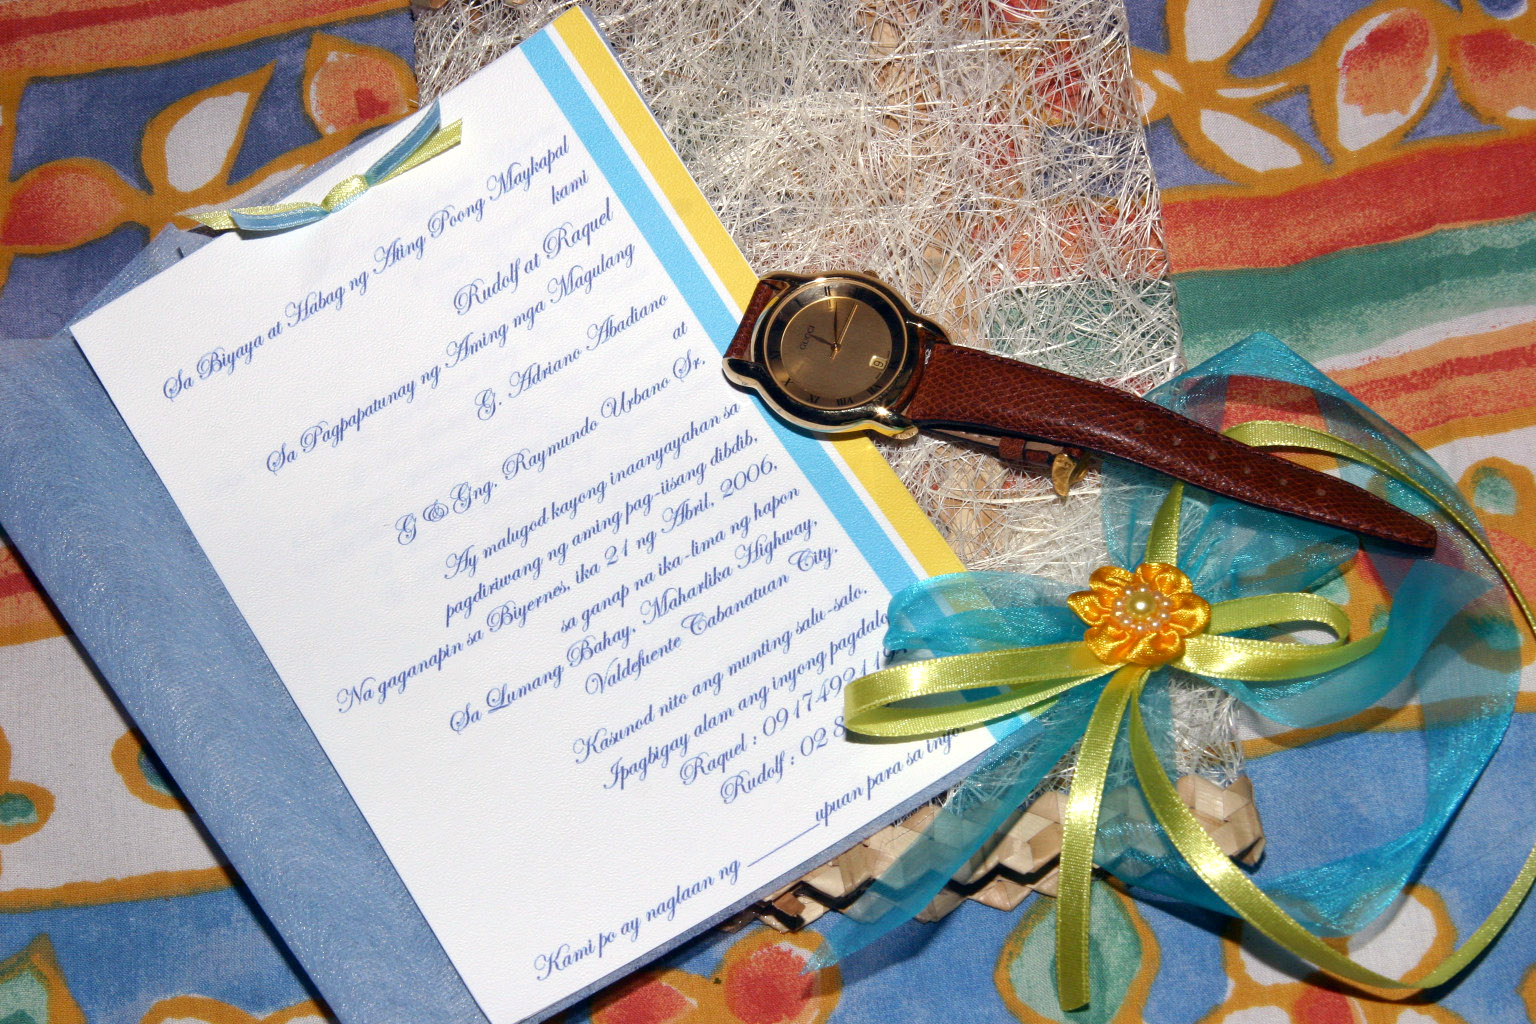 We Also Have A Prayer Written In Tagalog The Last Page Of Our Invitation And Verse As Well